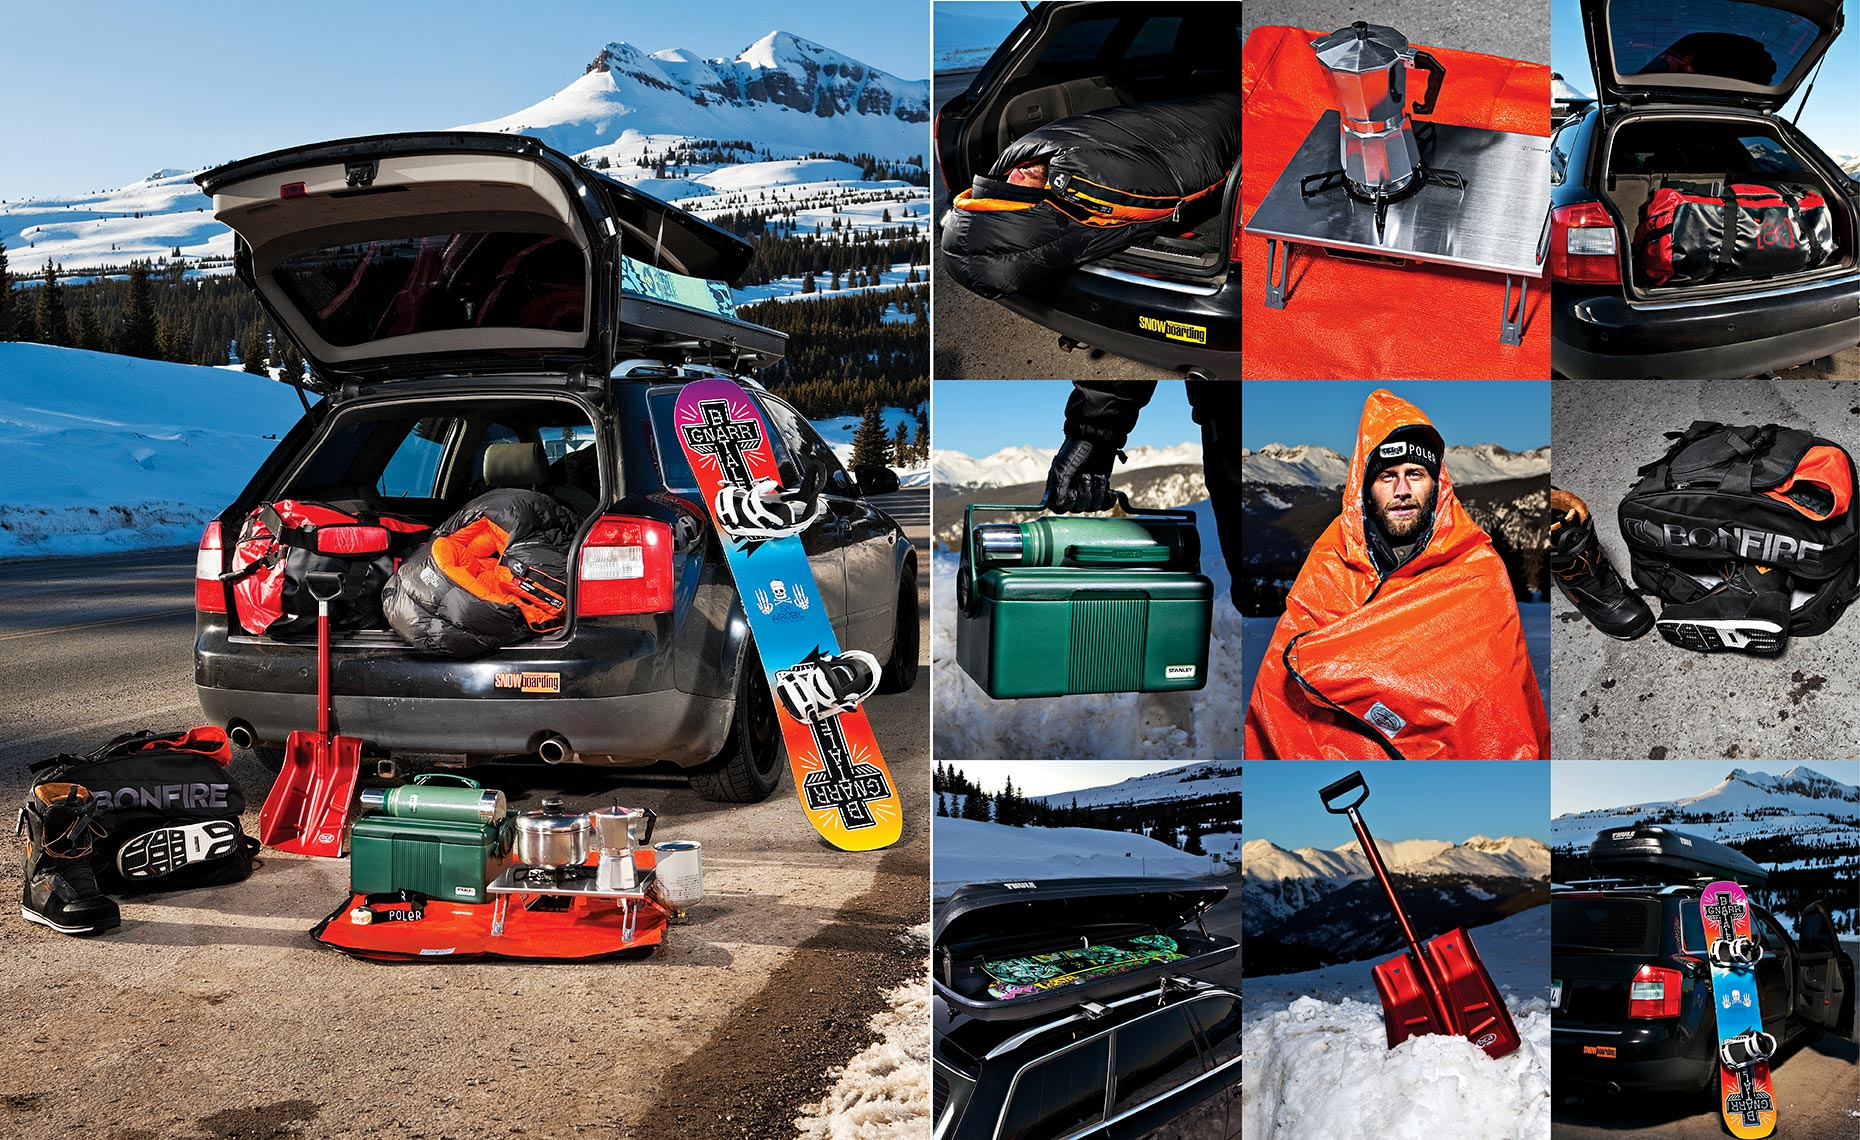 12_Snowboarding_Road_Trip_Product_Chris_Wellhausen_Photography-DUP.JPG